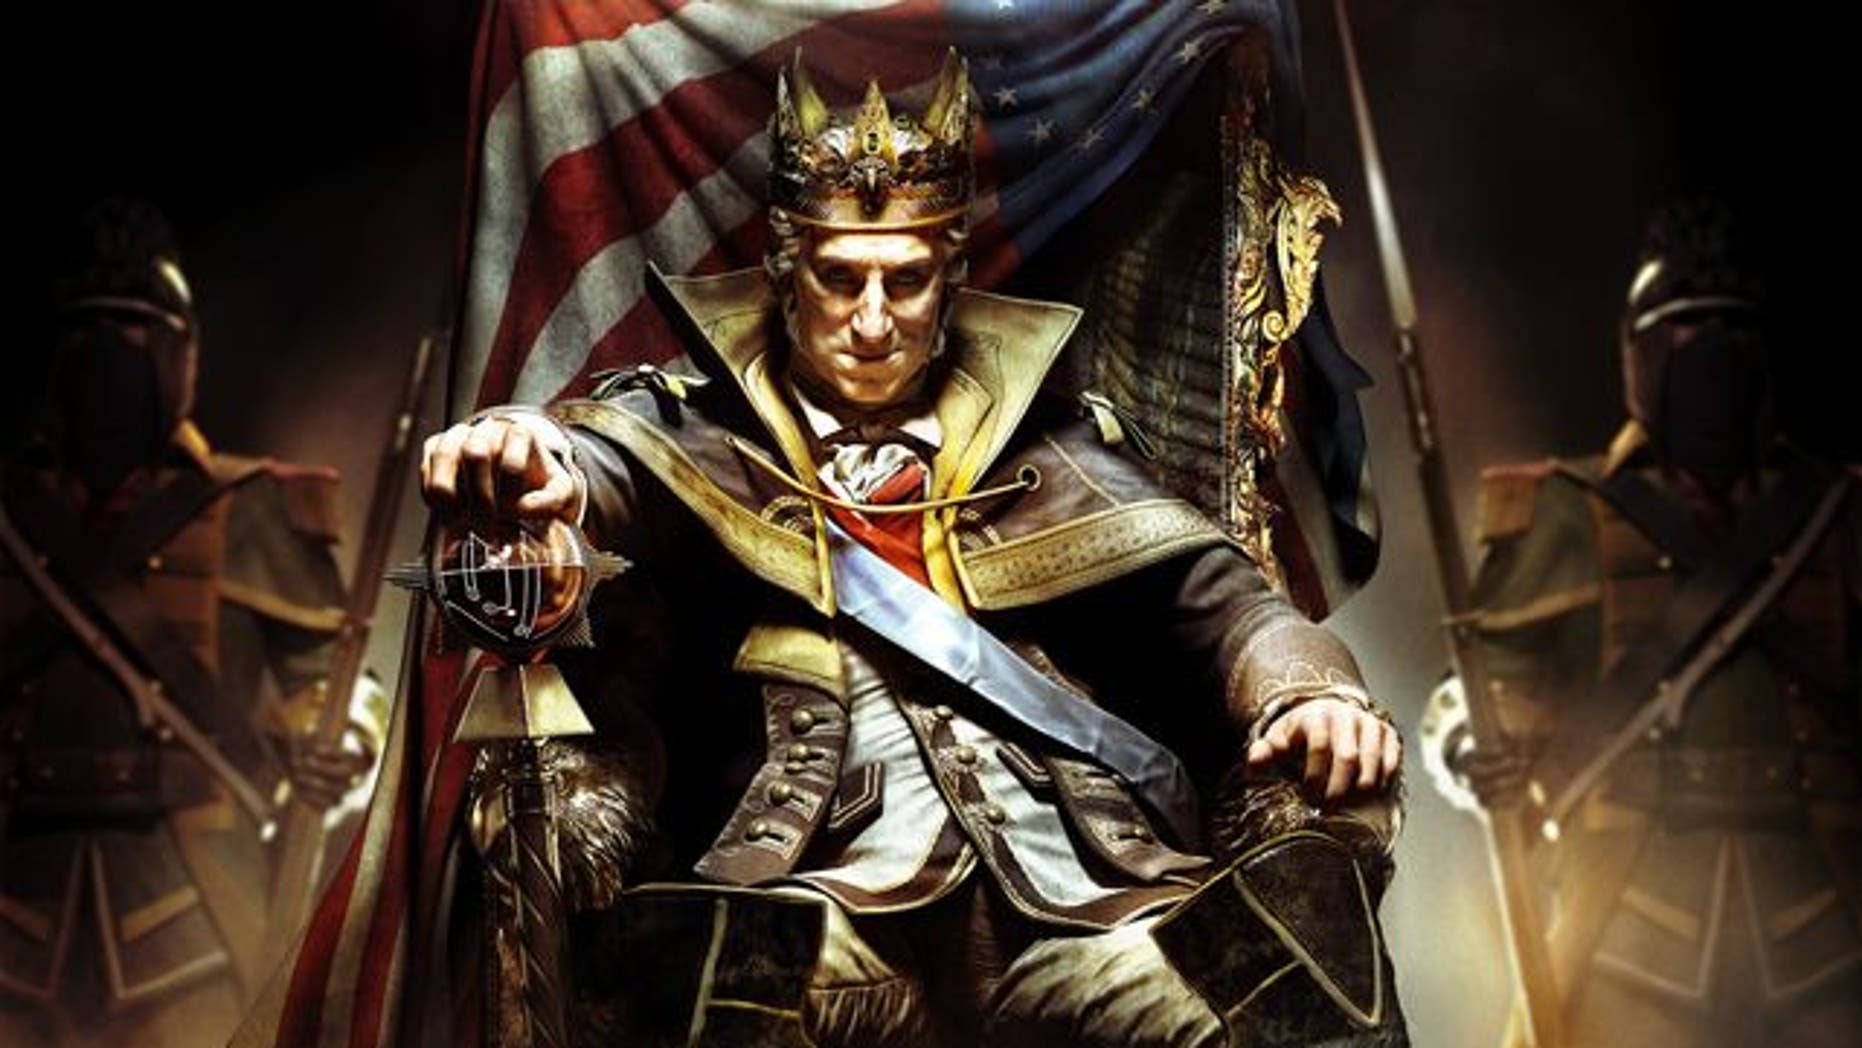 This undated handout image provided by Ubisoft shows a scene from the Ubisoft game: the Tyranny of King Washington.